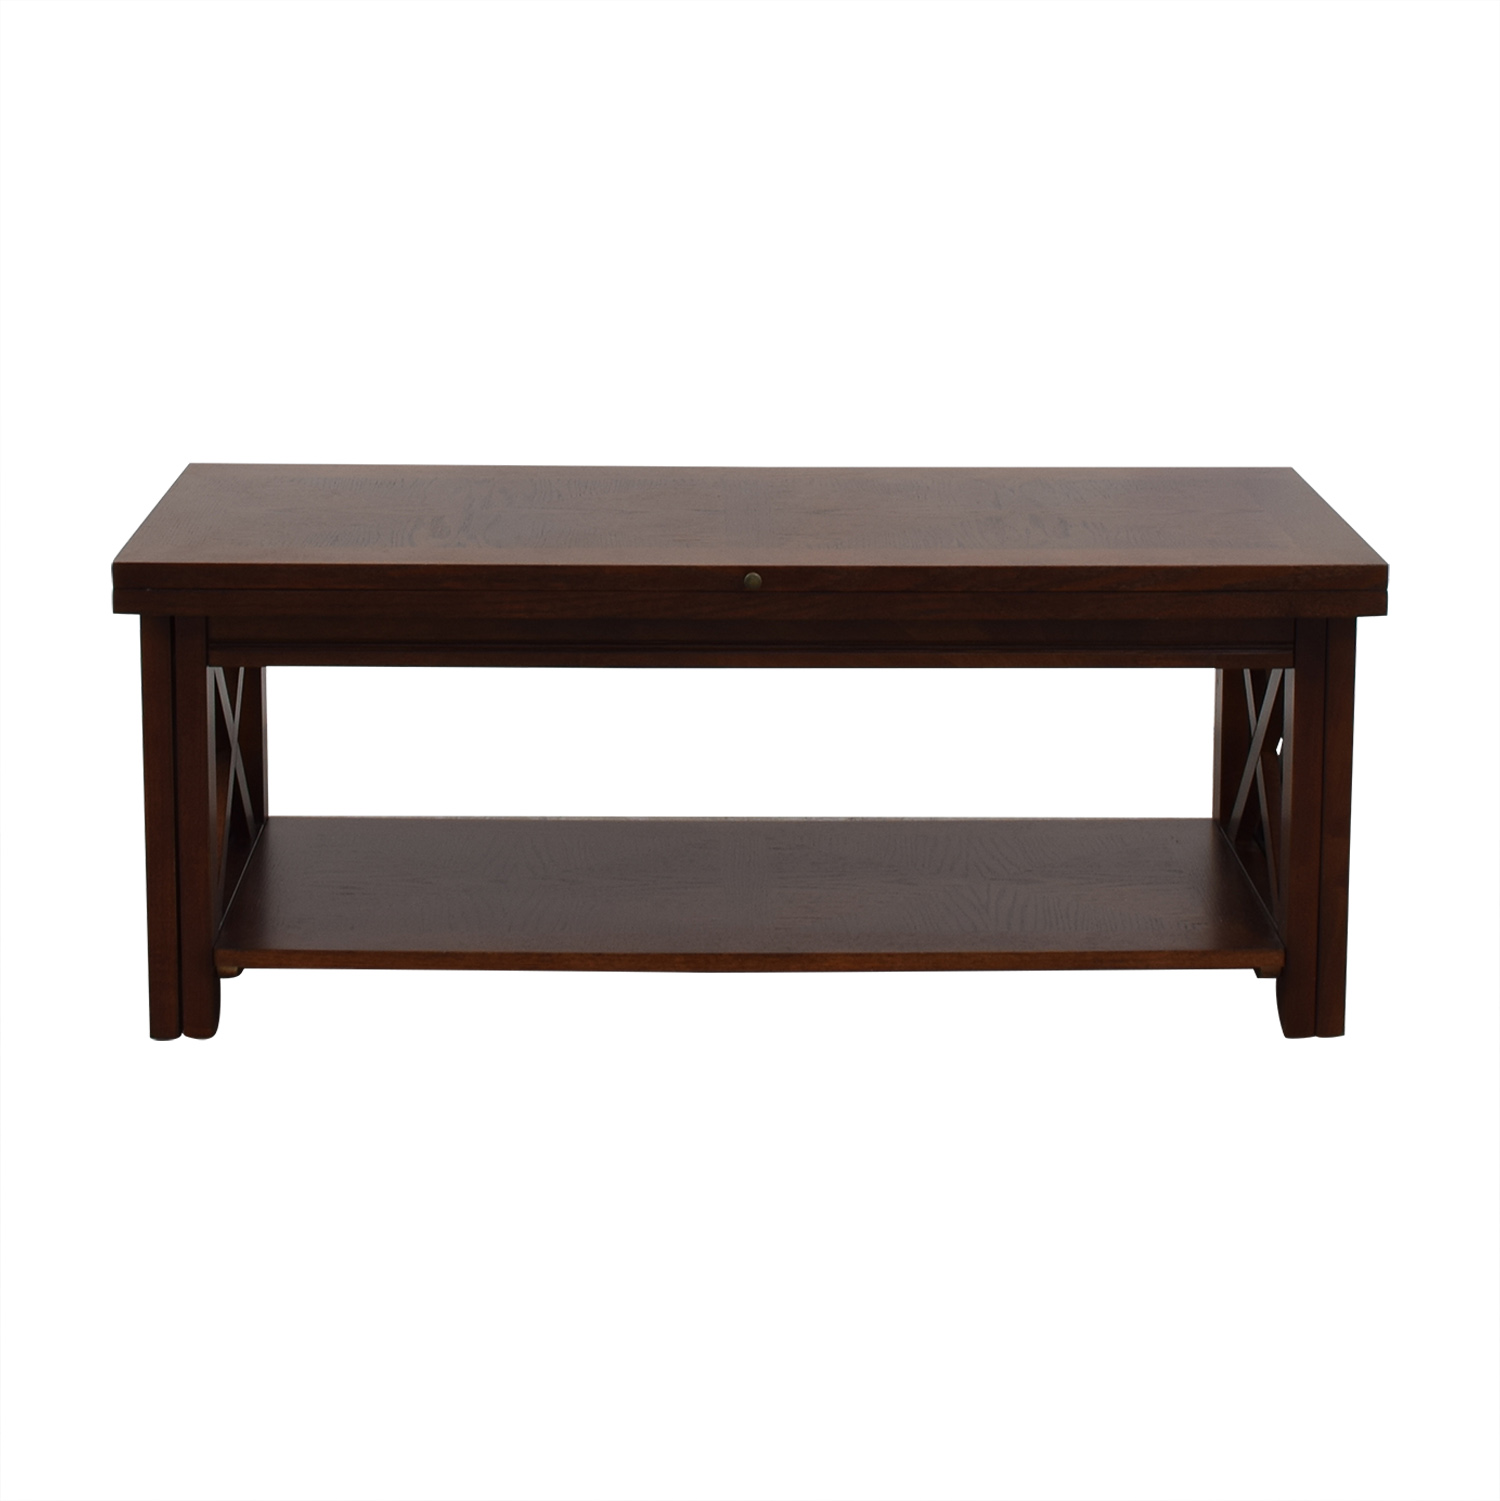 shop Raymour & Flanigan Tucson Extendable Coffee Table Raymour & Flanigan Tables